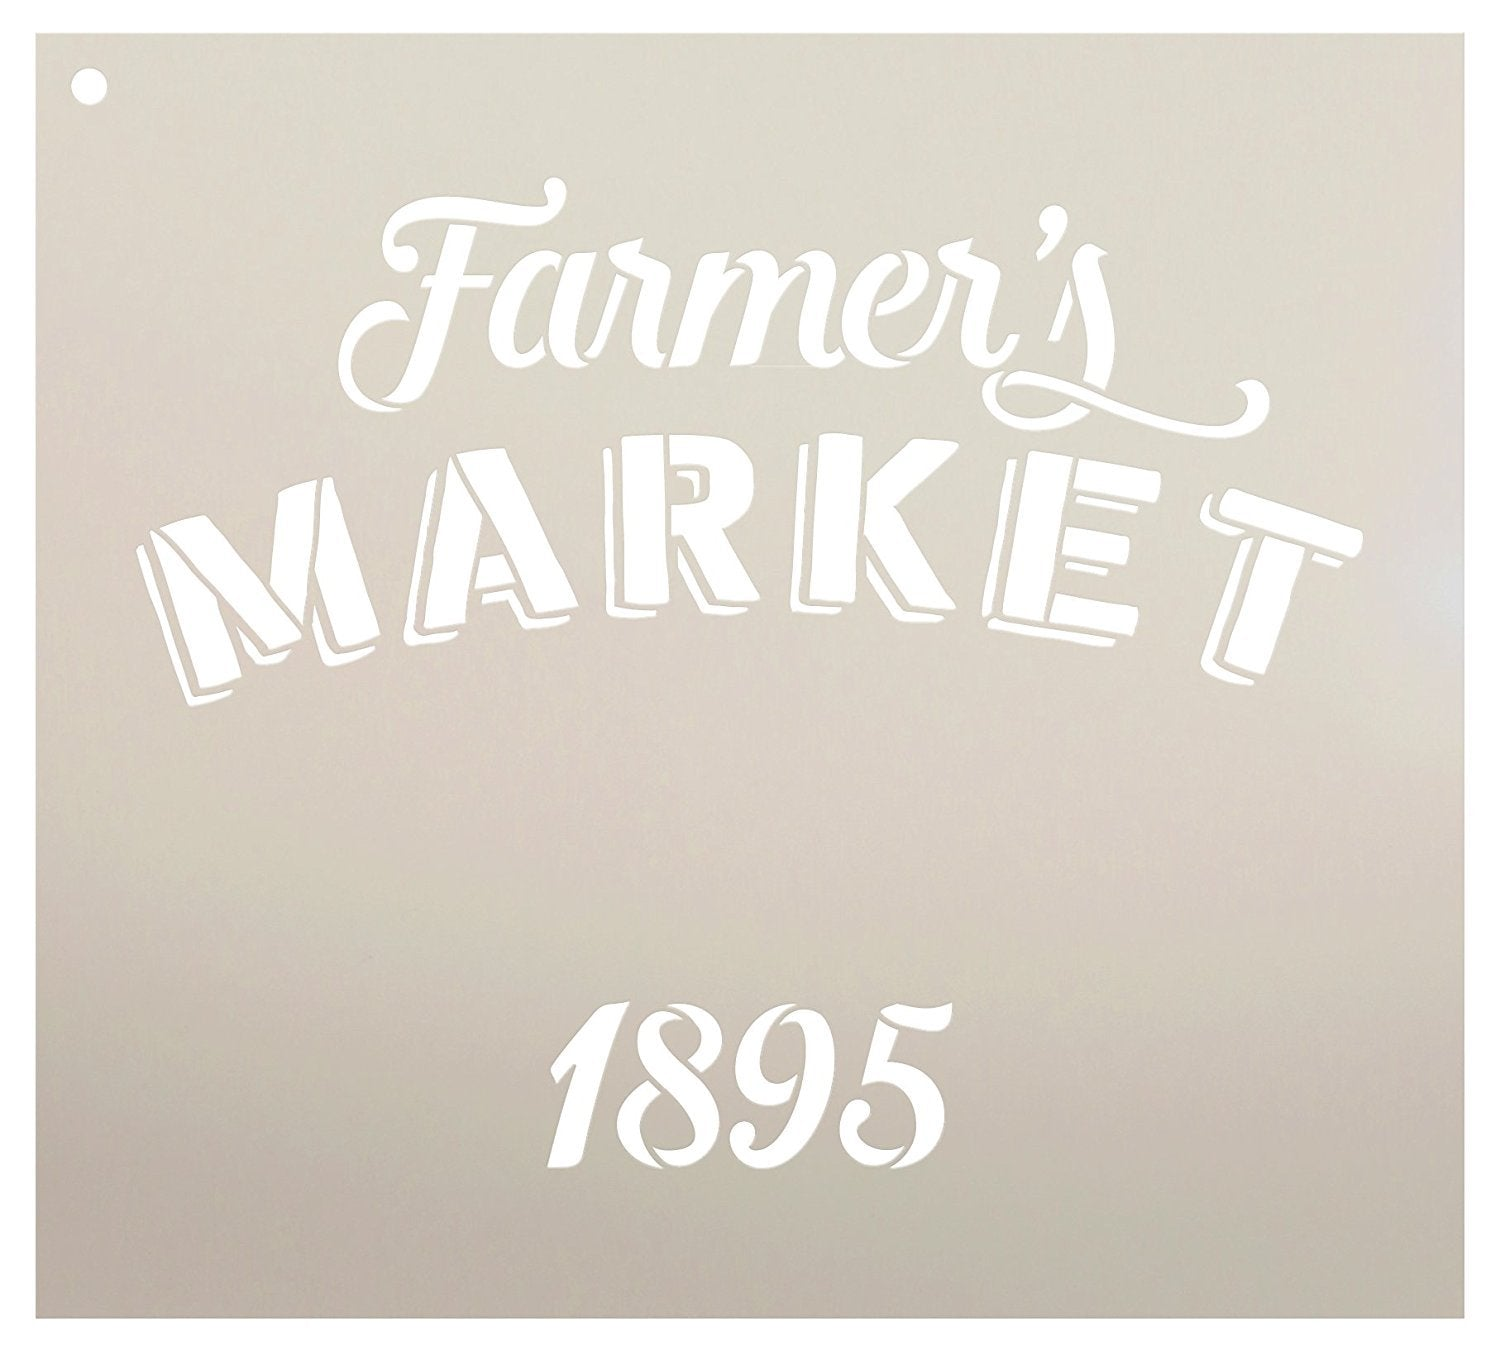 "Farmer's Market 1895 Stencil by StudioR12 | Country Store Sign Word Art - Reusable Mylar Template | Painting, Chalk, Mixed Media | DIY Decor - STCL2335 - SELECT SIZE (10"" x 9"")"